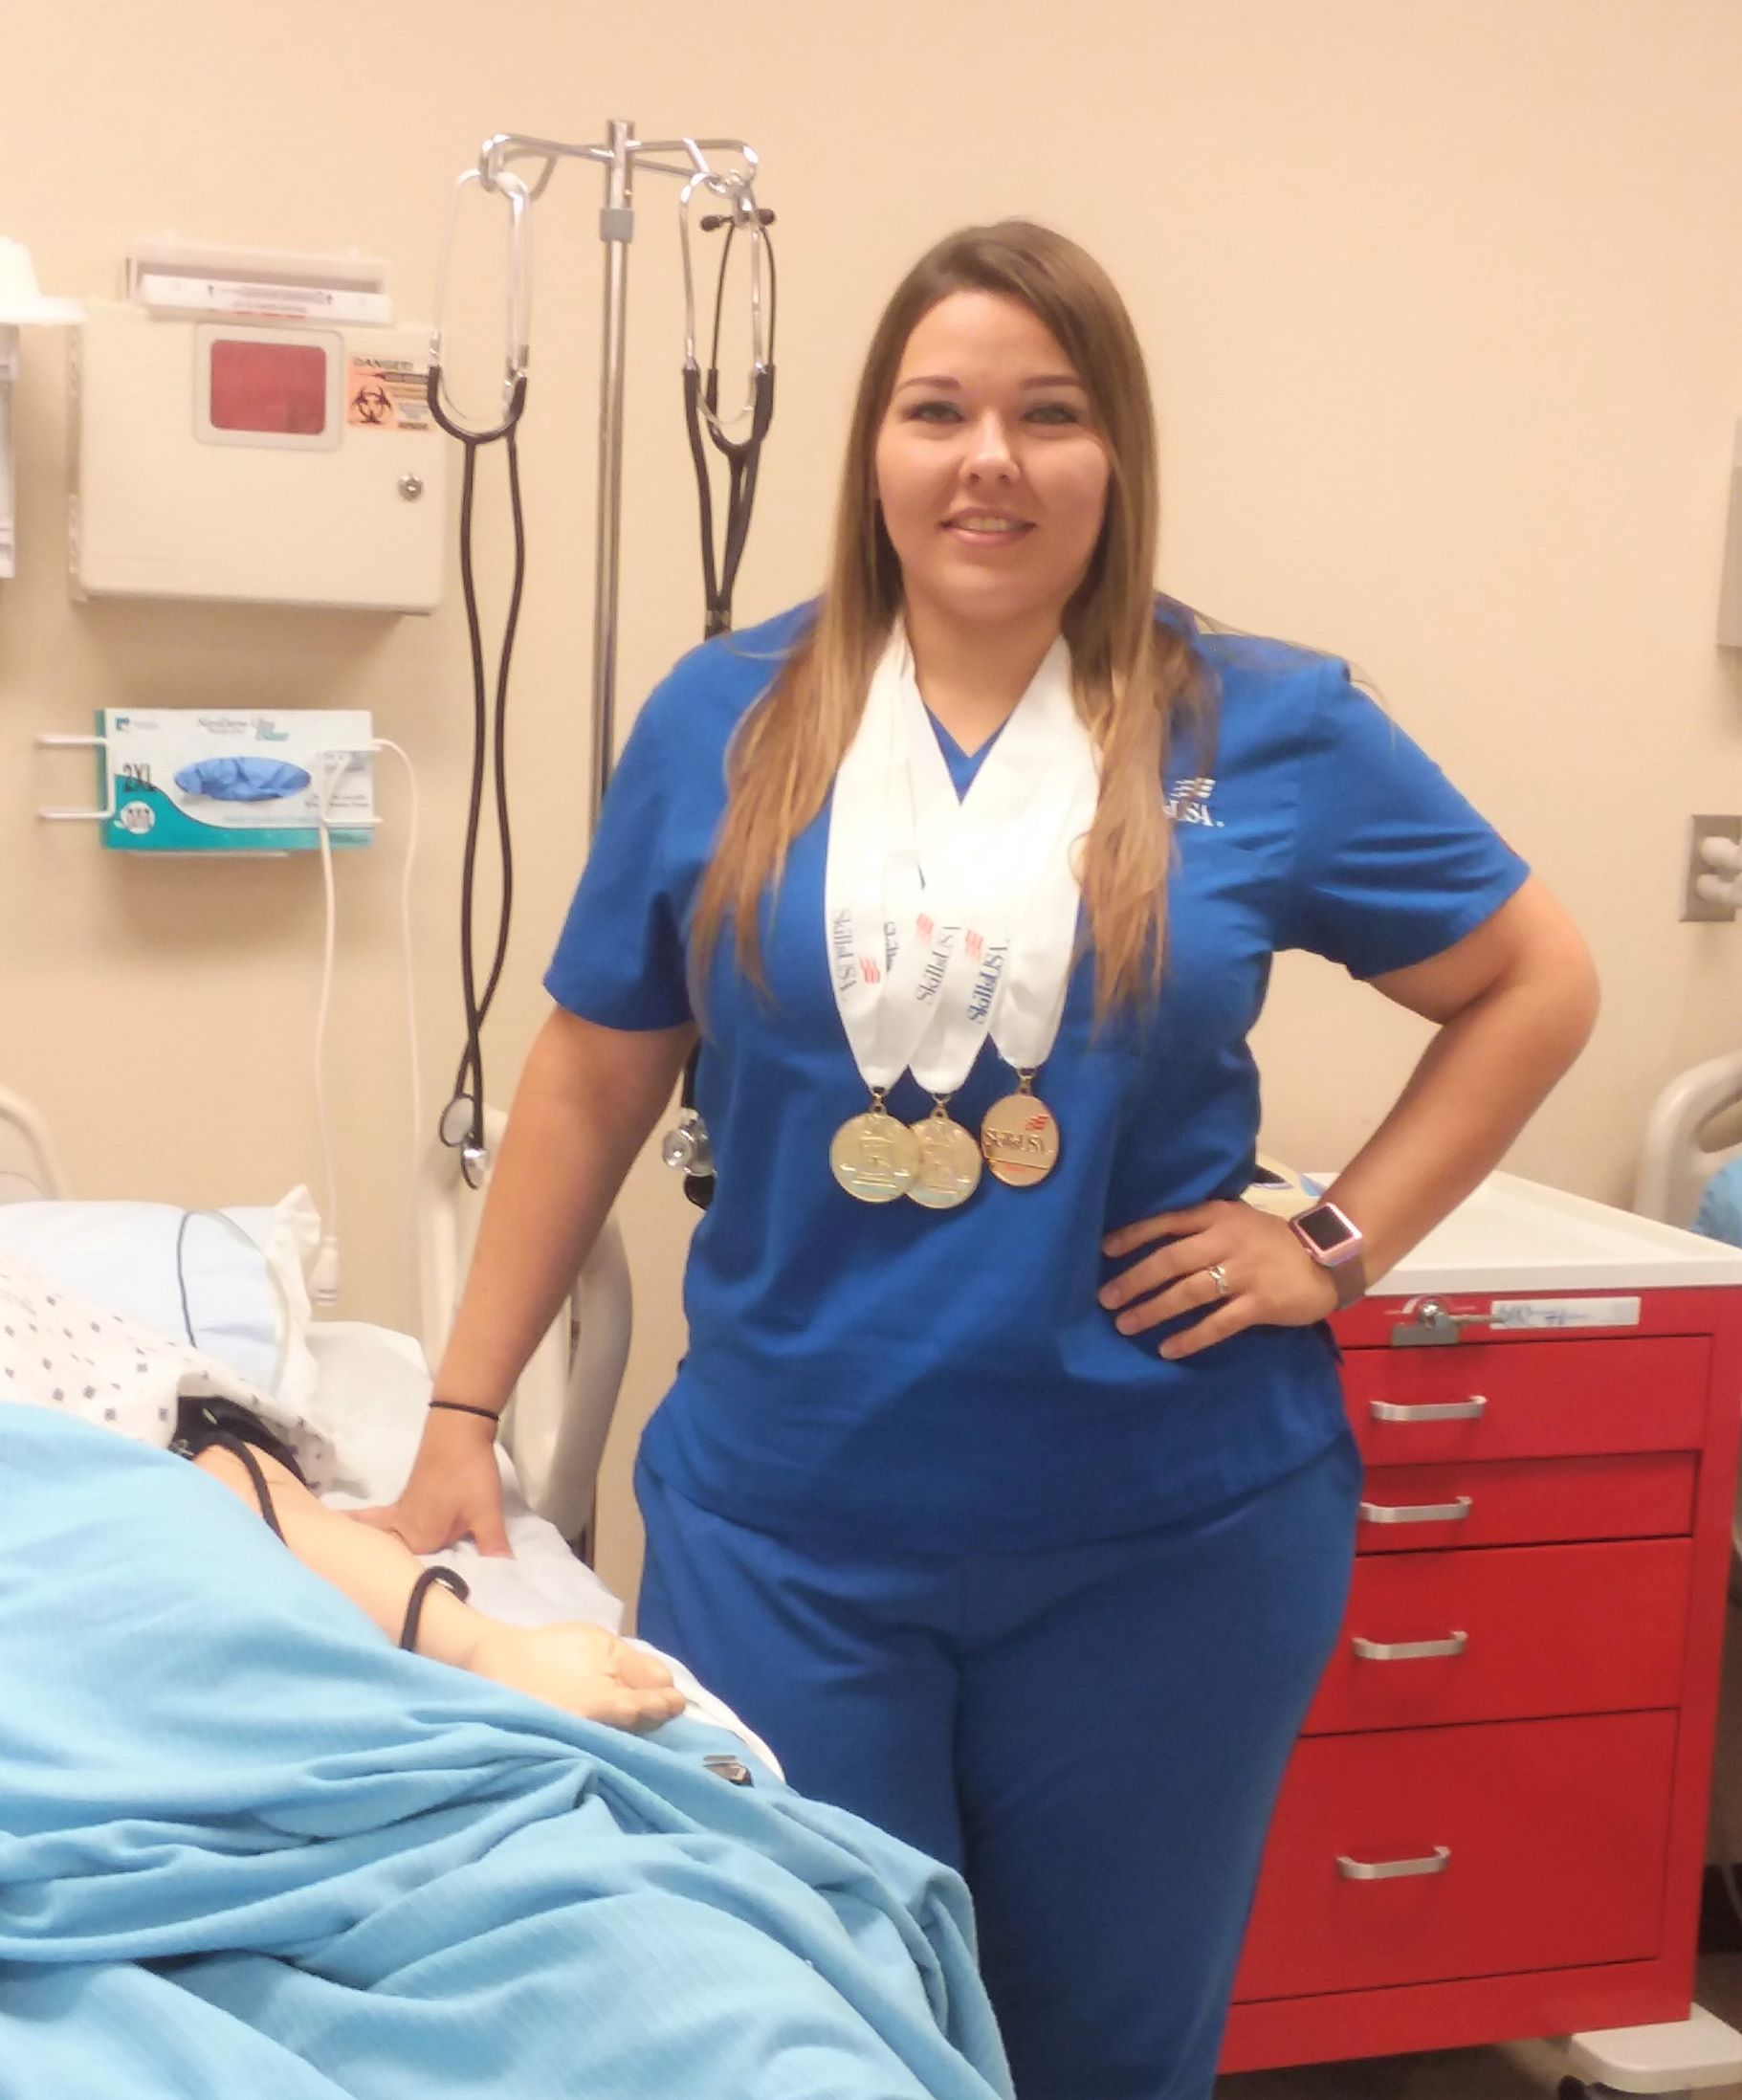 TSTC Student to Compete for Third Time at SkillsUSA Nationals